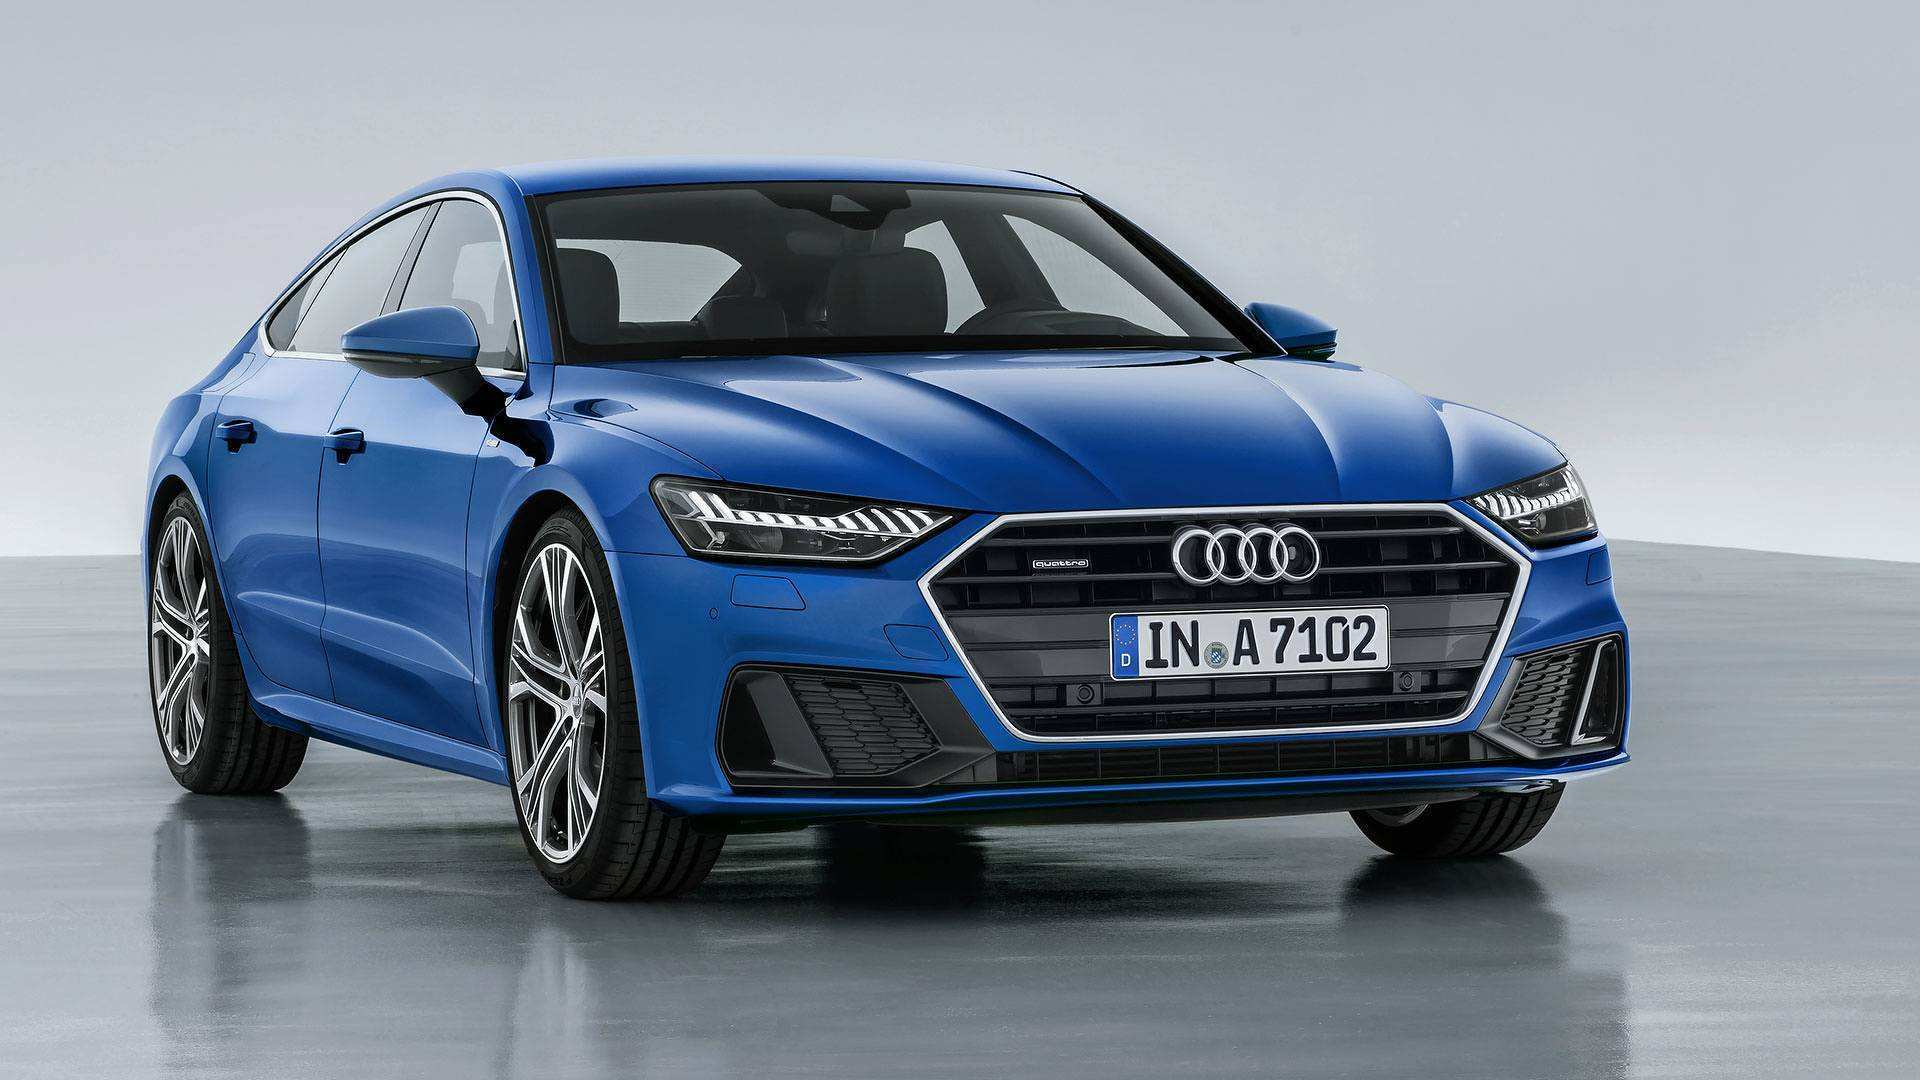 59 Concept of Best 2019 Audi S7 Engine Performance And New Engine Performance for Best 2019 Audi S7 Engine Performance And New Engine